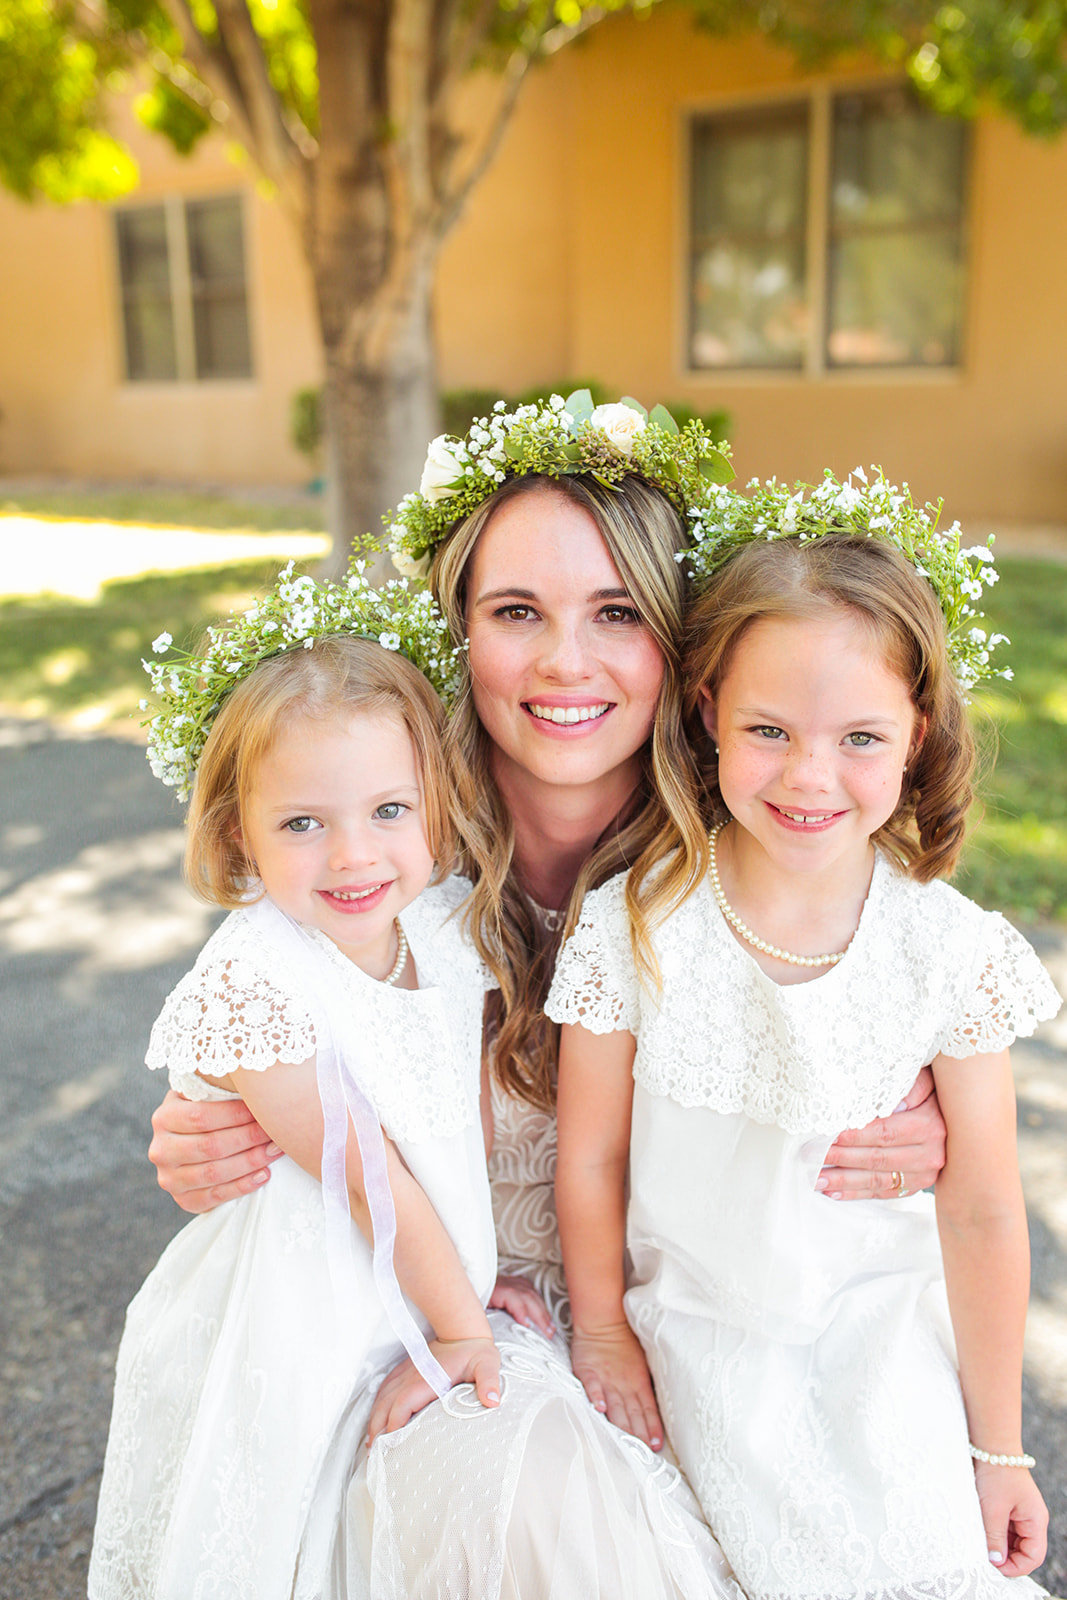 Albuquerque Wedding Photographer_Catholic Wedding_www.tylerbrooke.com_Kate Kauffman_019